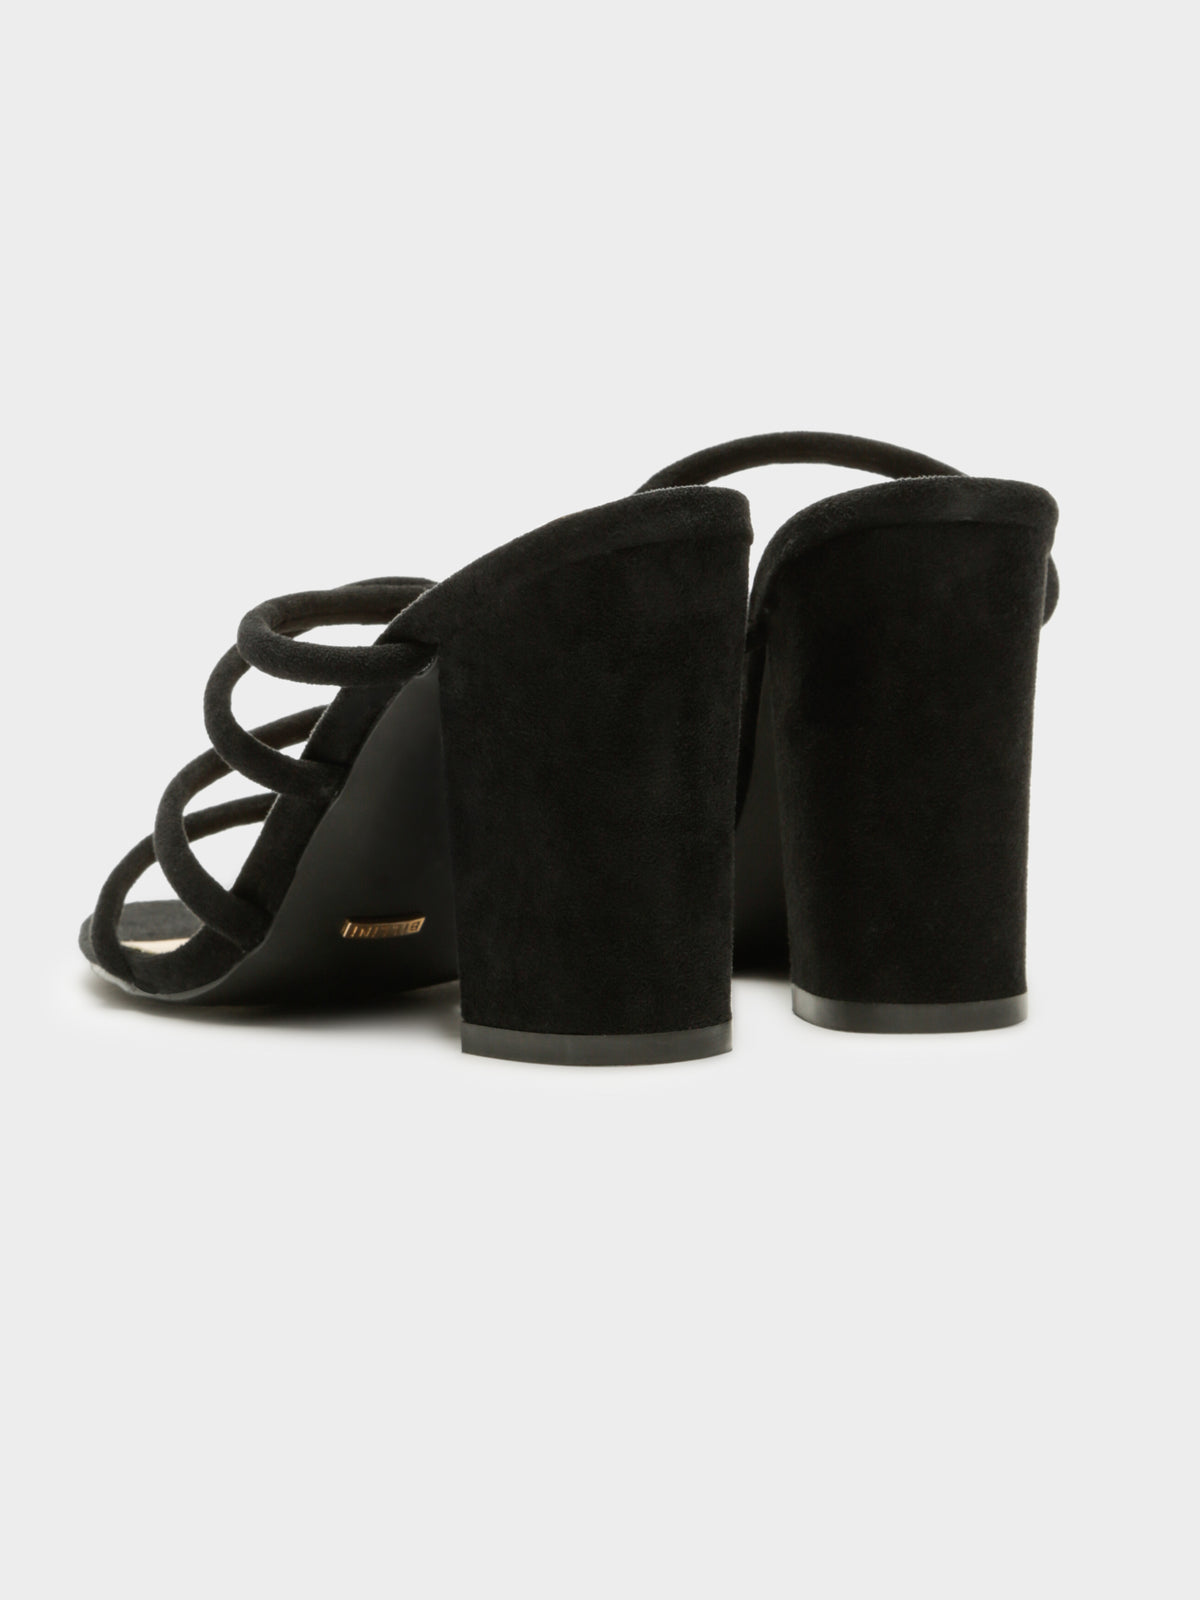 Womens Navo Heels in Black